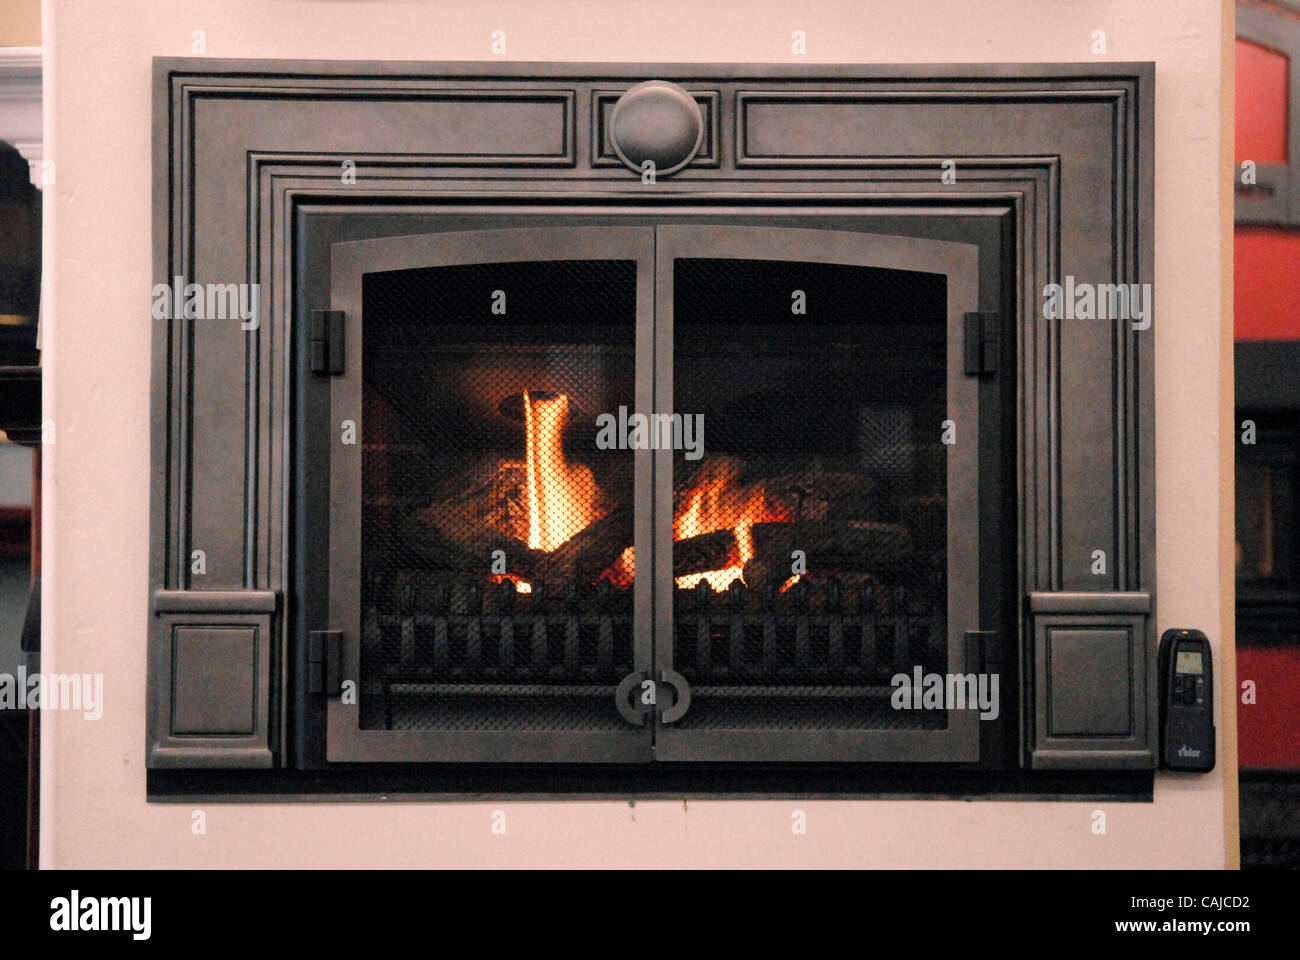 A gas fireplace insert, an option for those who want to convert ...